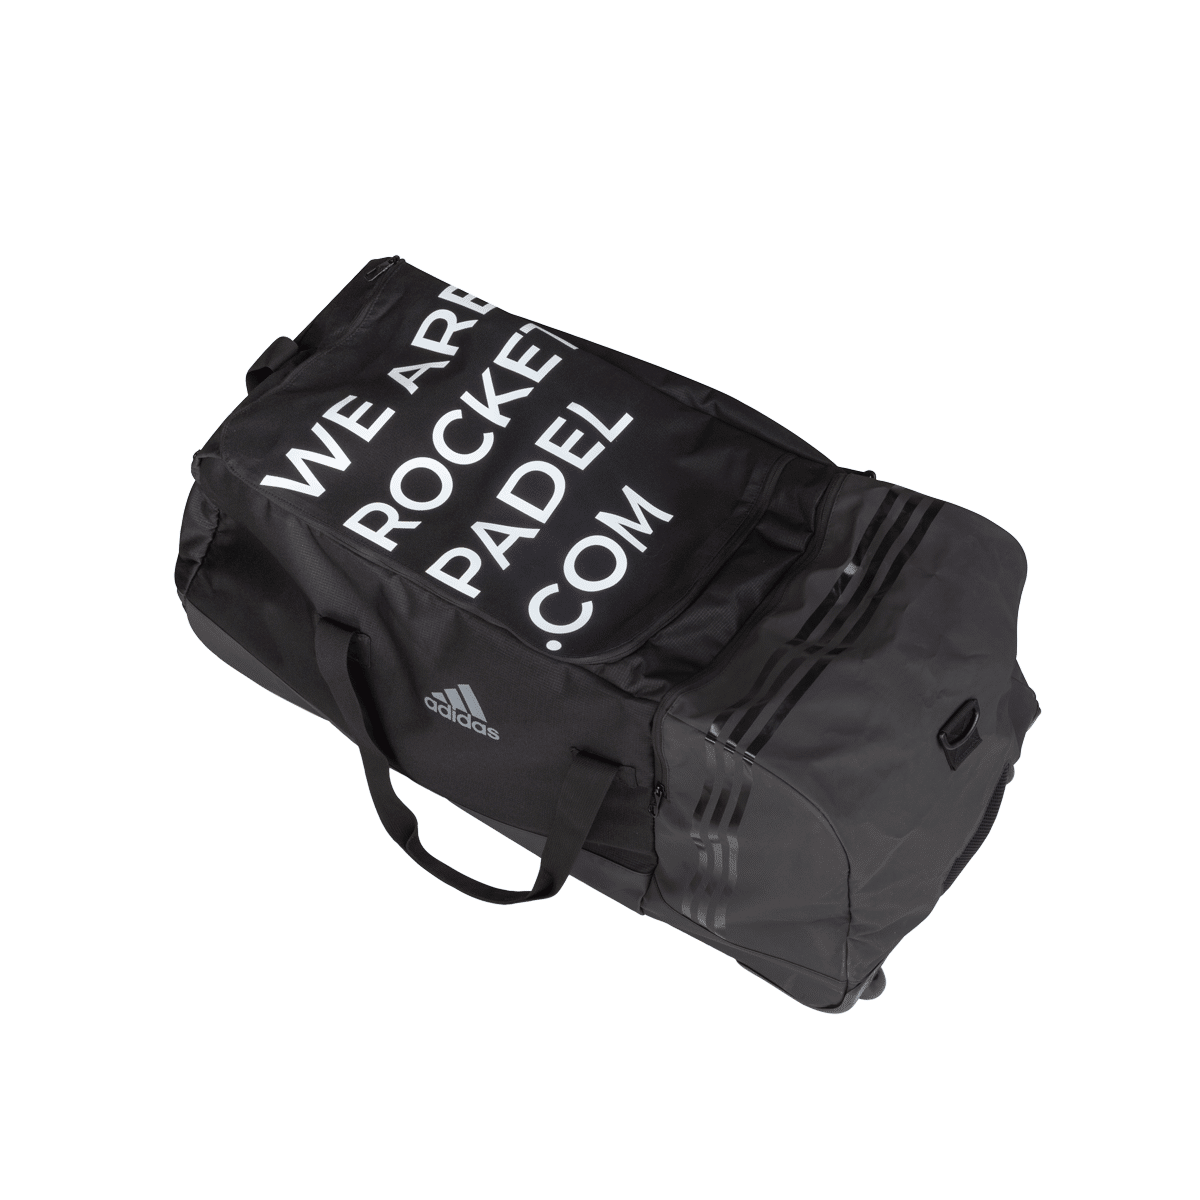 Rocket Padel travel bag